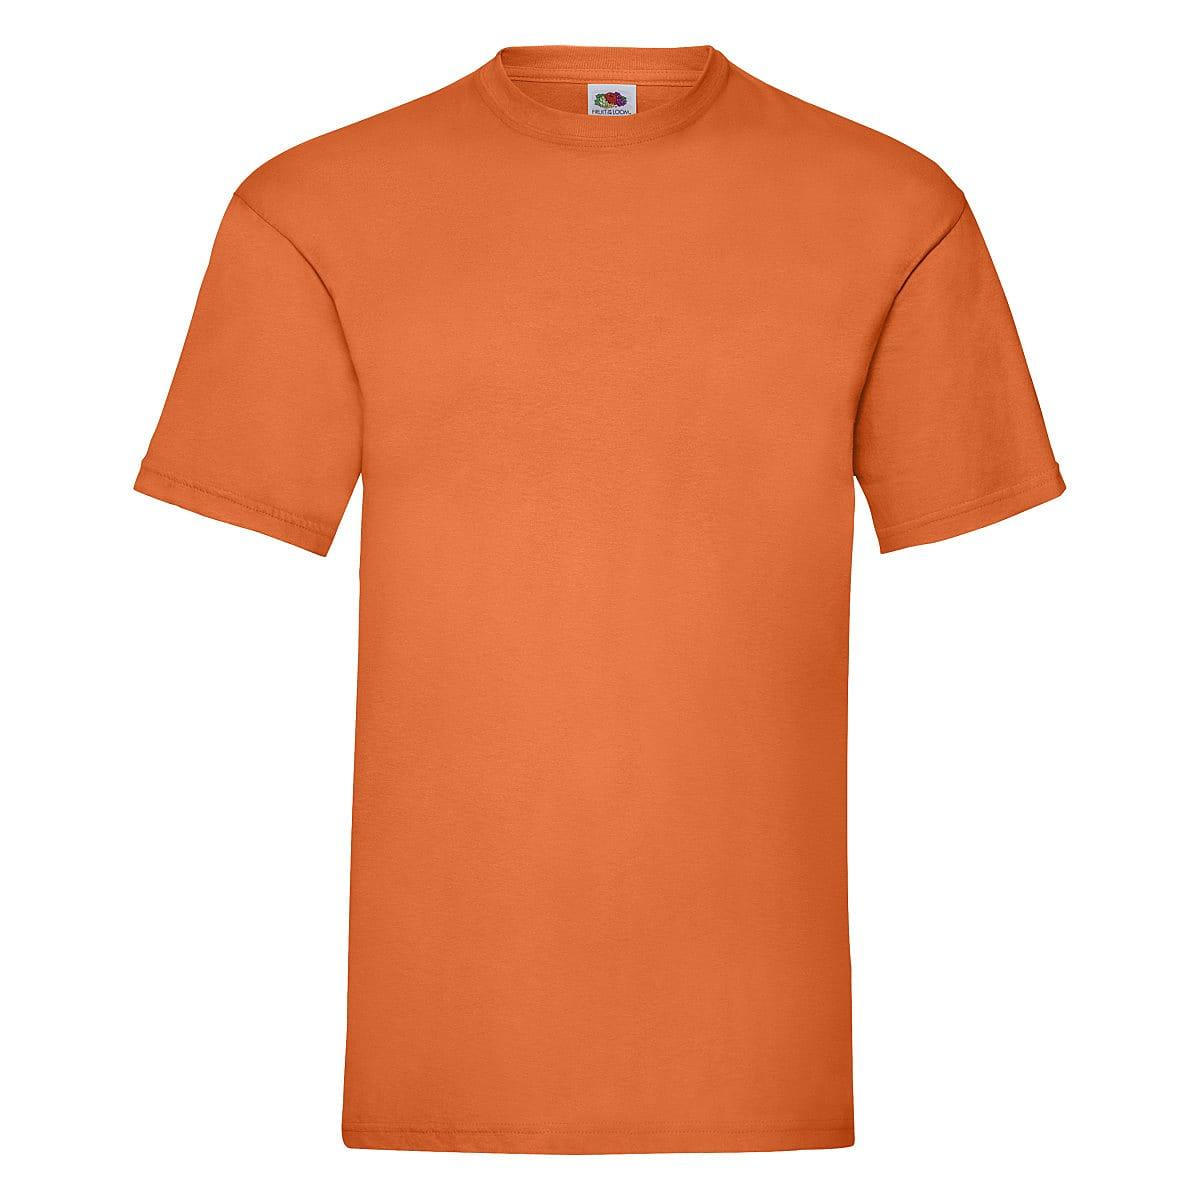 Fruit Of The Loom Valueweight T-Shirt in Orange (Product Code: 61036)